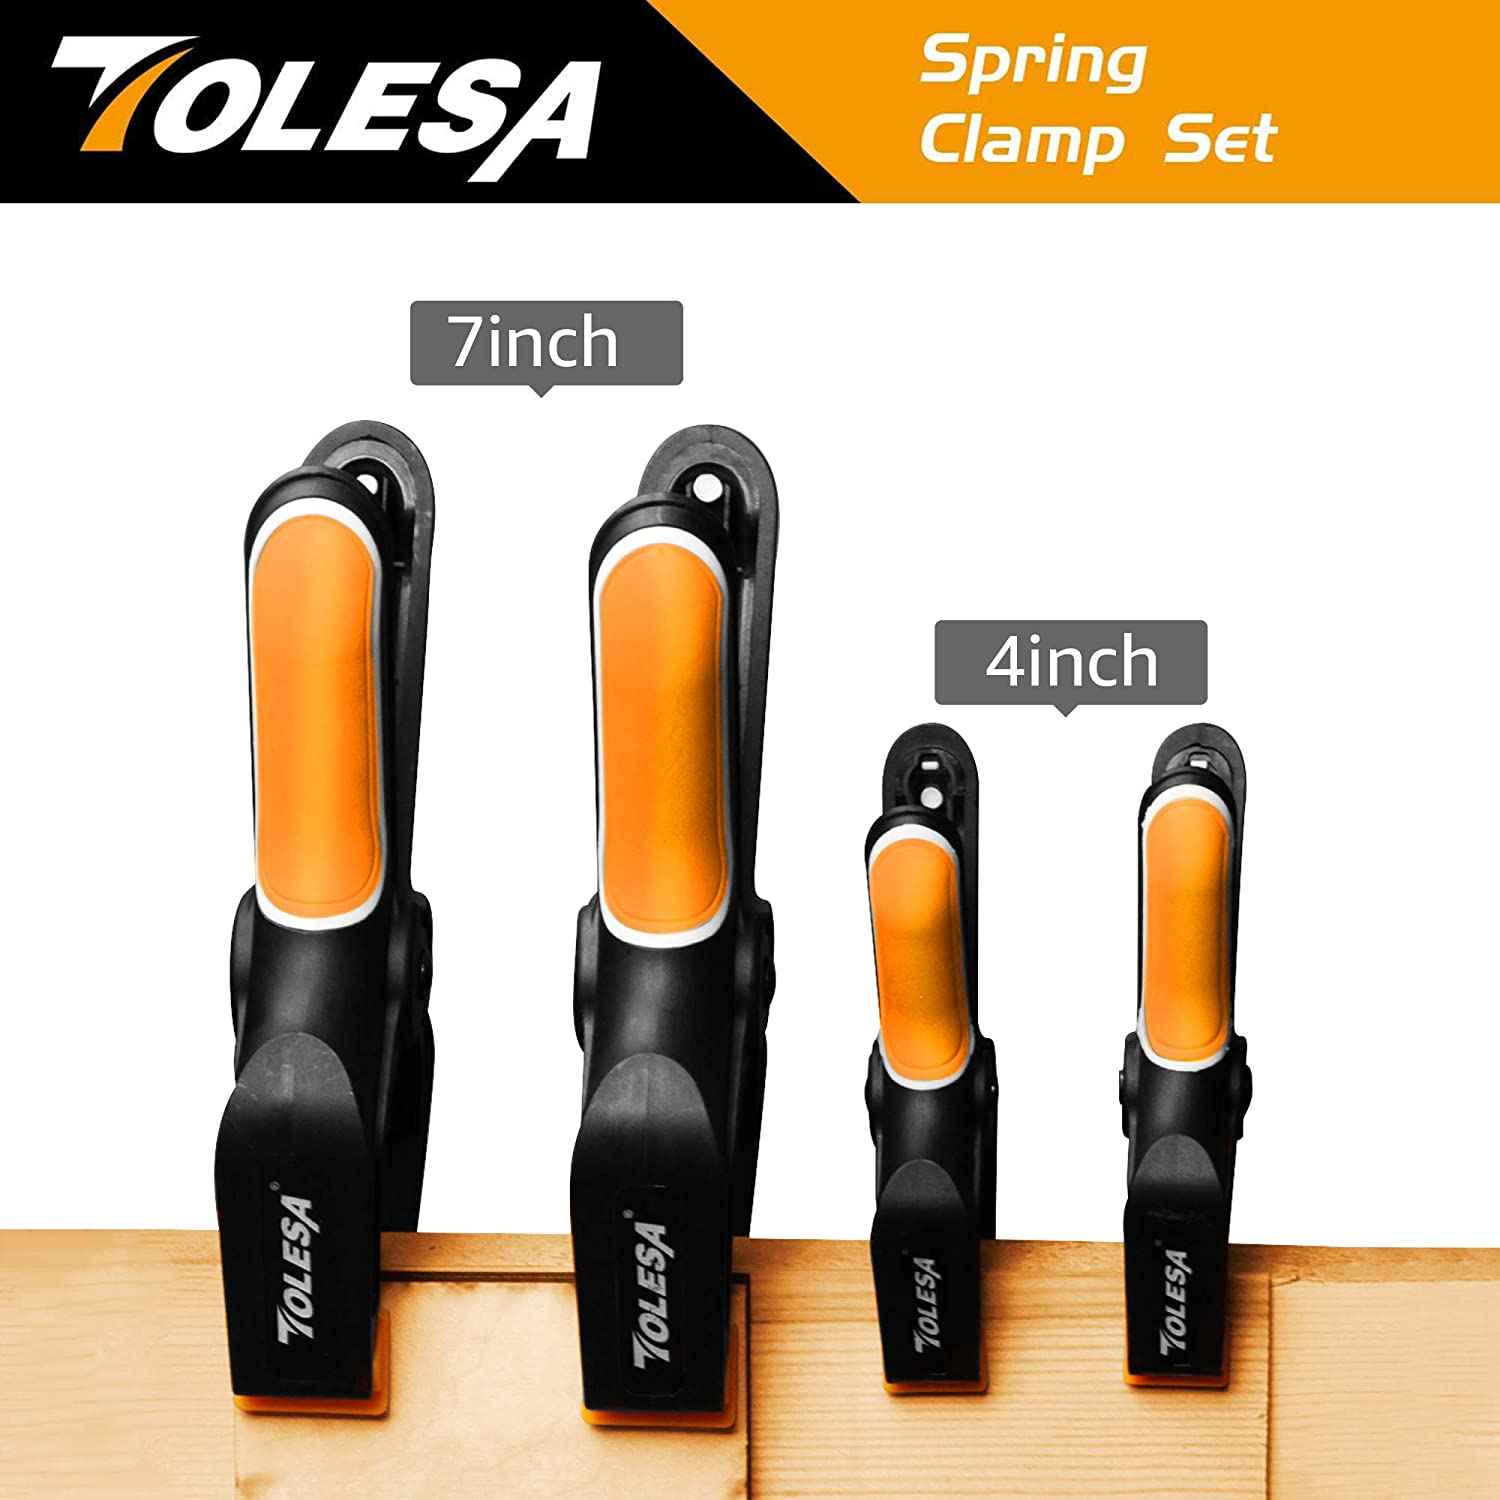 Clamping and Securing TOLESA 6-Piece Nylon Spring Clamp Set-2 Pcs 7 Inch Clamps 4 Pcs 4 Inch Clamps for Gluing